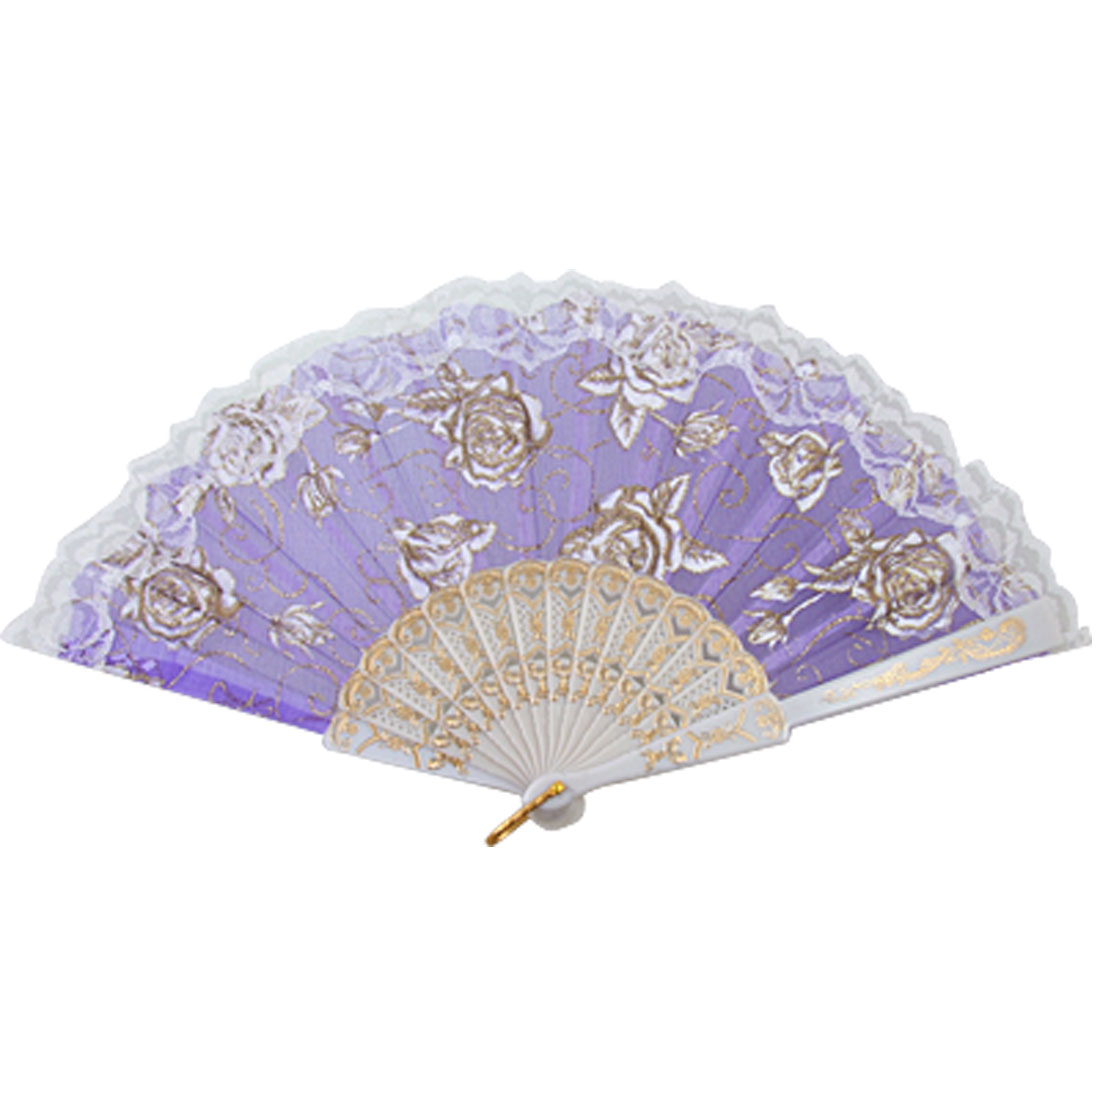 Indigo Blue Plastic Ribs Dance Folding Hand Fan